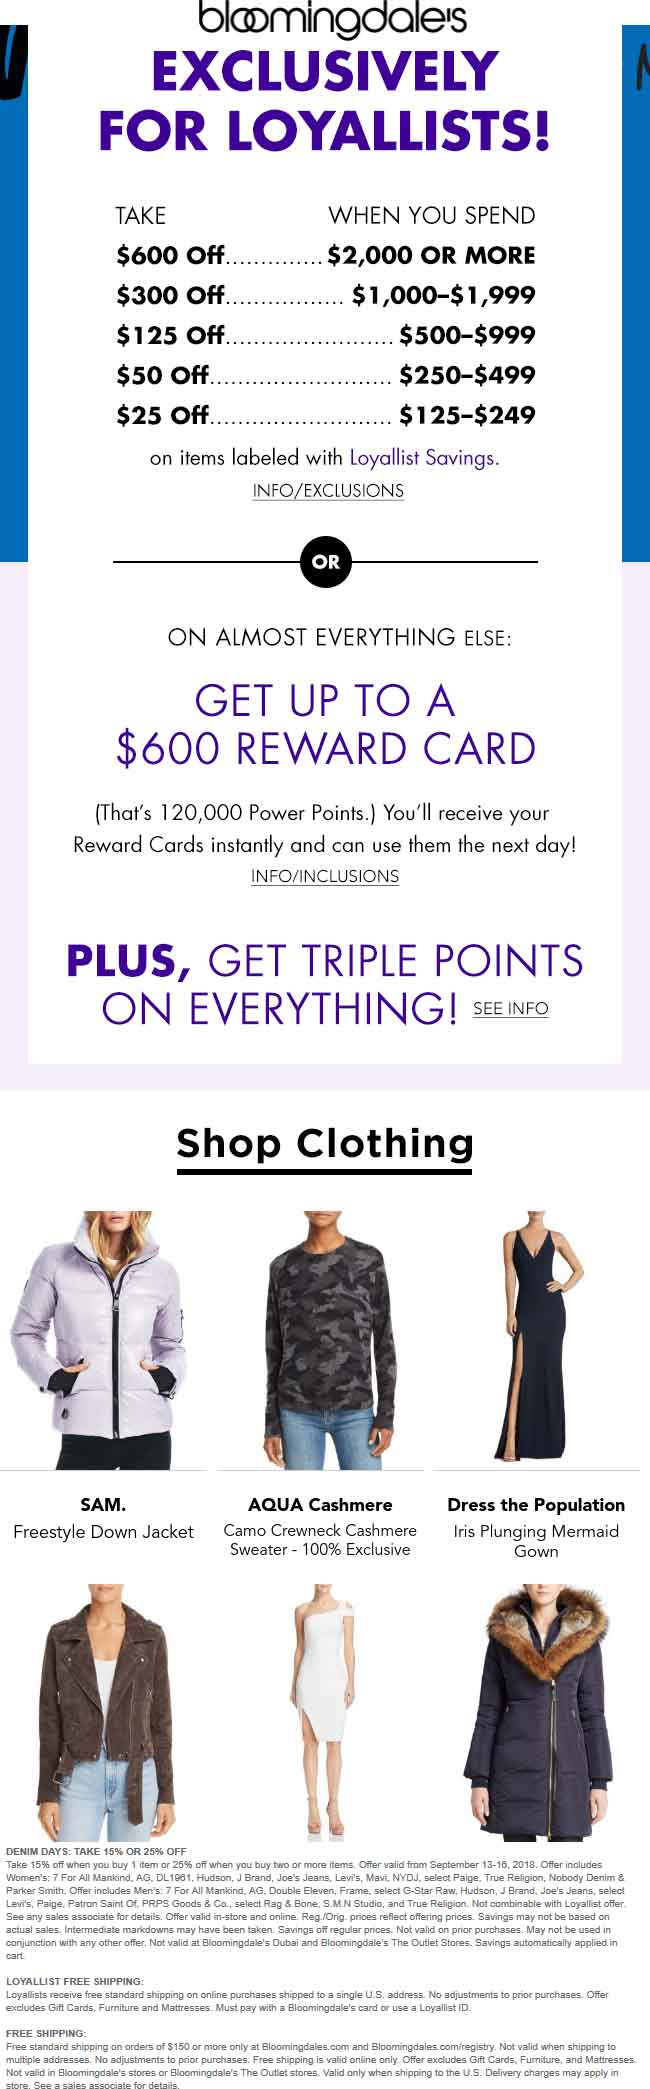 Bloomingdales Coupon February 2020 $25-$600 off $125+ at Bloomingdales, ditto online